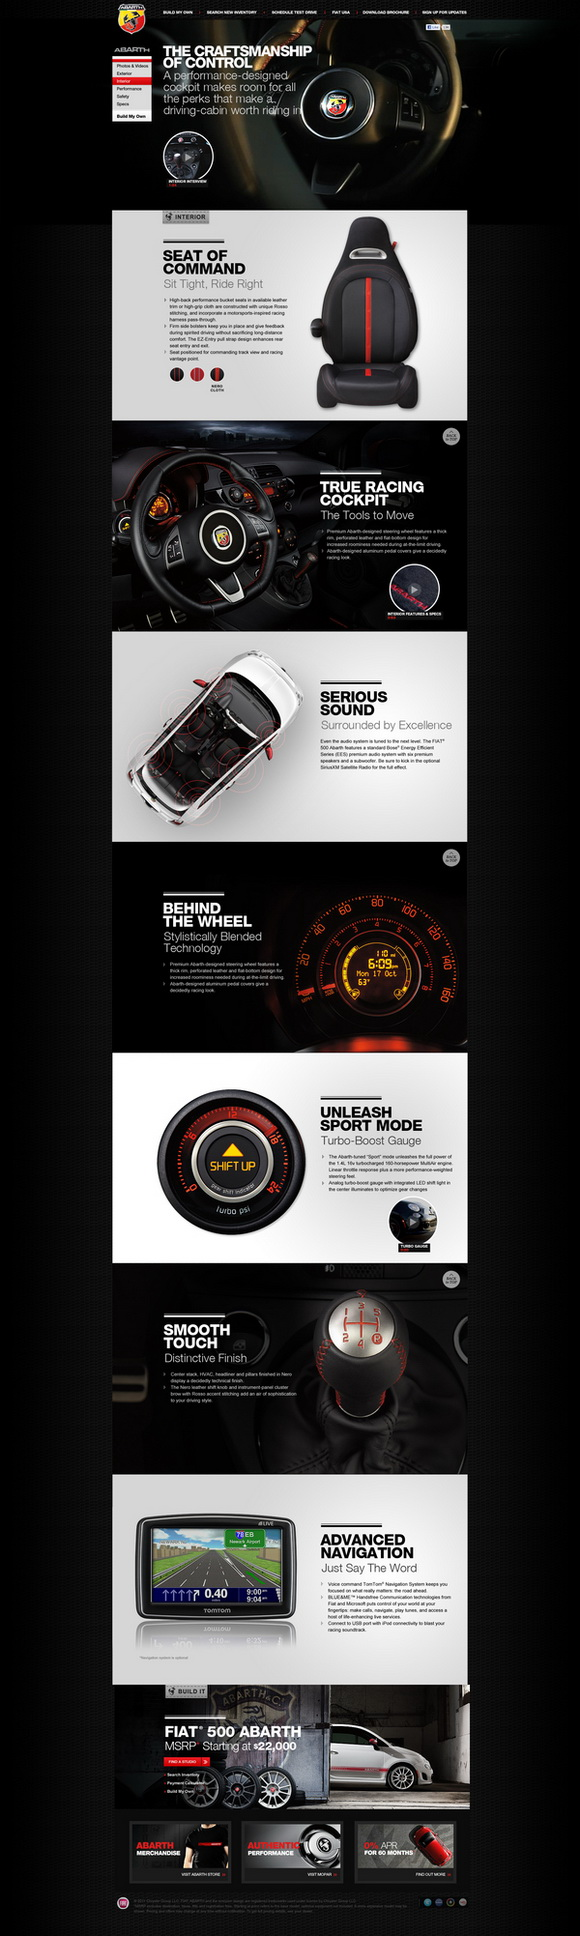 Fiat-500-Abarth-Website-Design